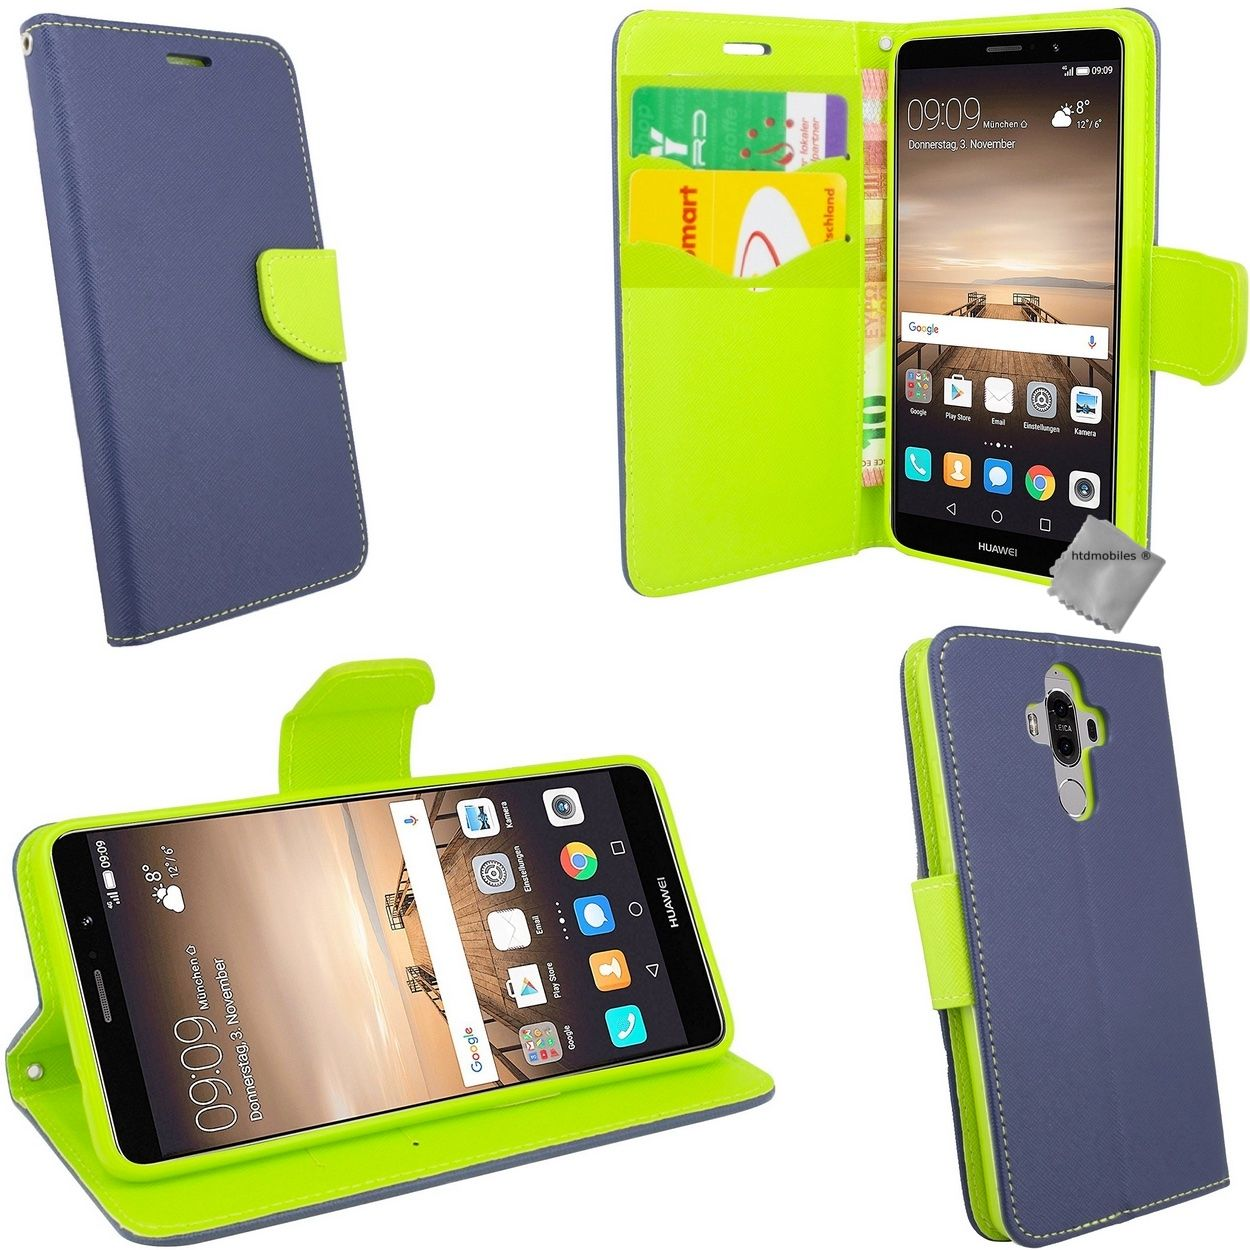 Housse etui coque pochette portefeuille pour huawei mate 9 for Housse huawei mate 9